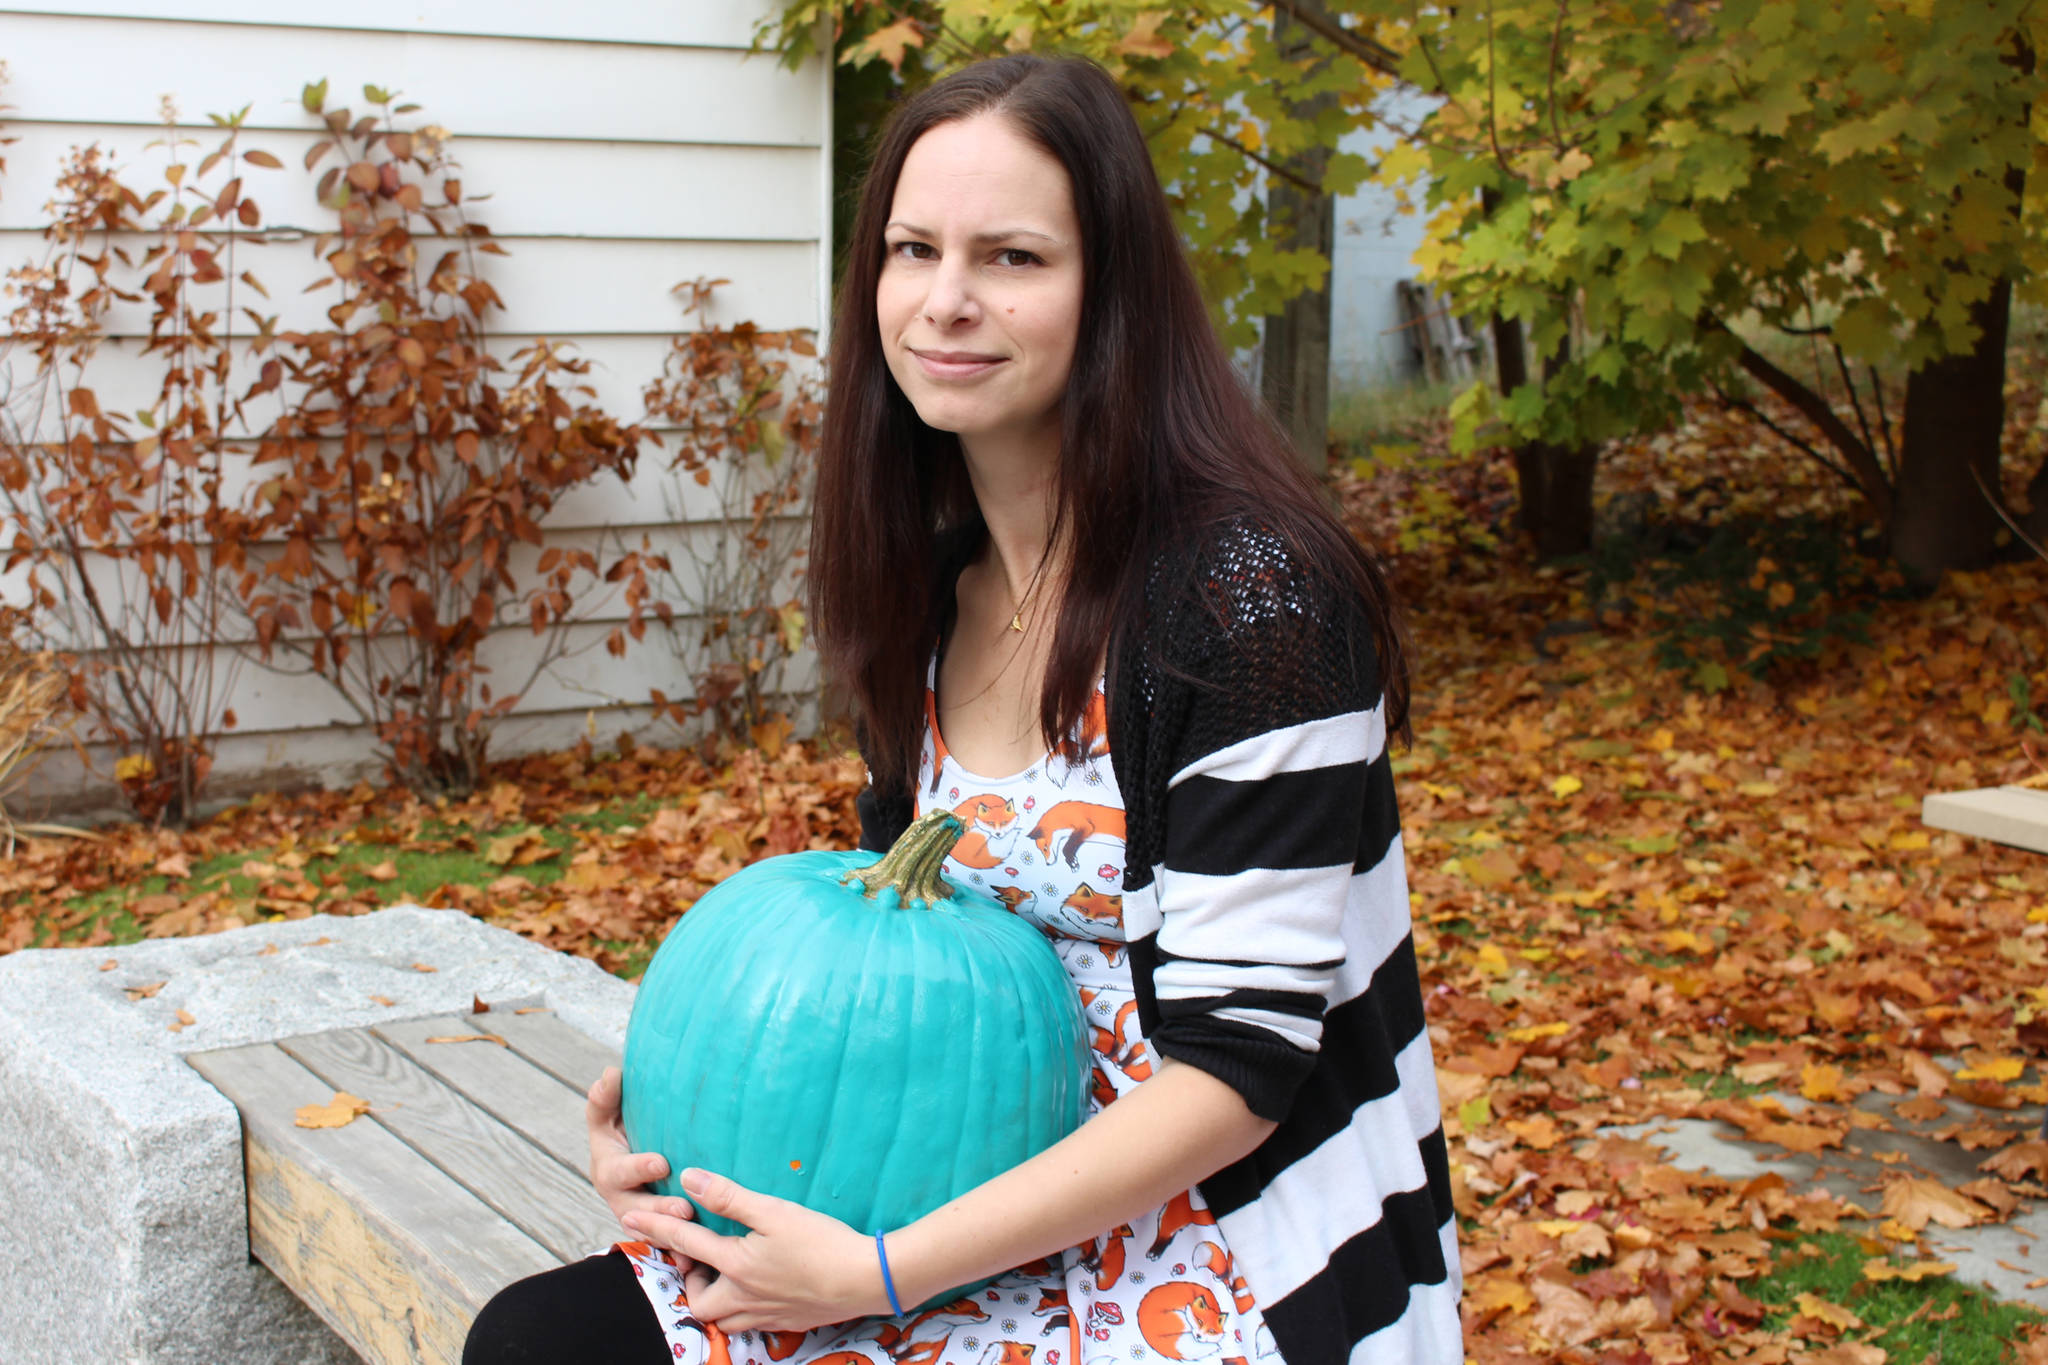 B.C. woman launches campaign for trick-or-treaters who can't eat candy